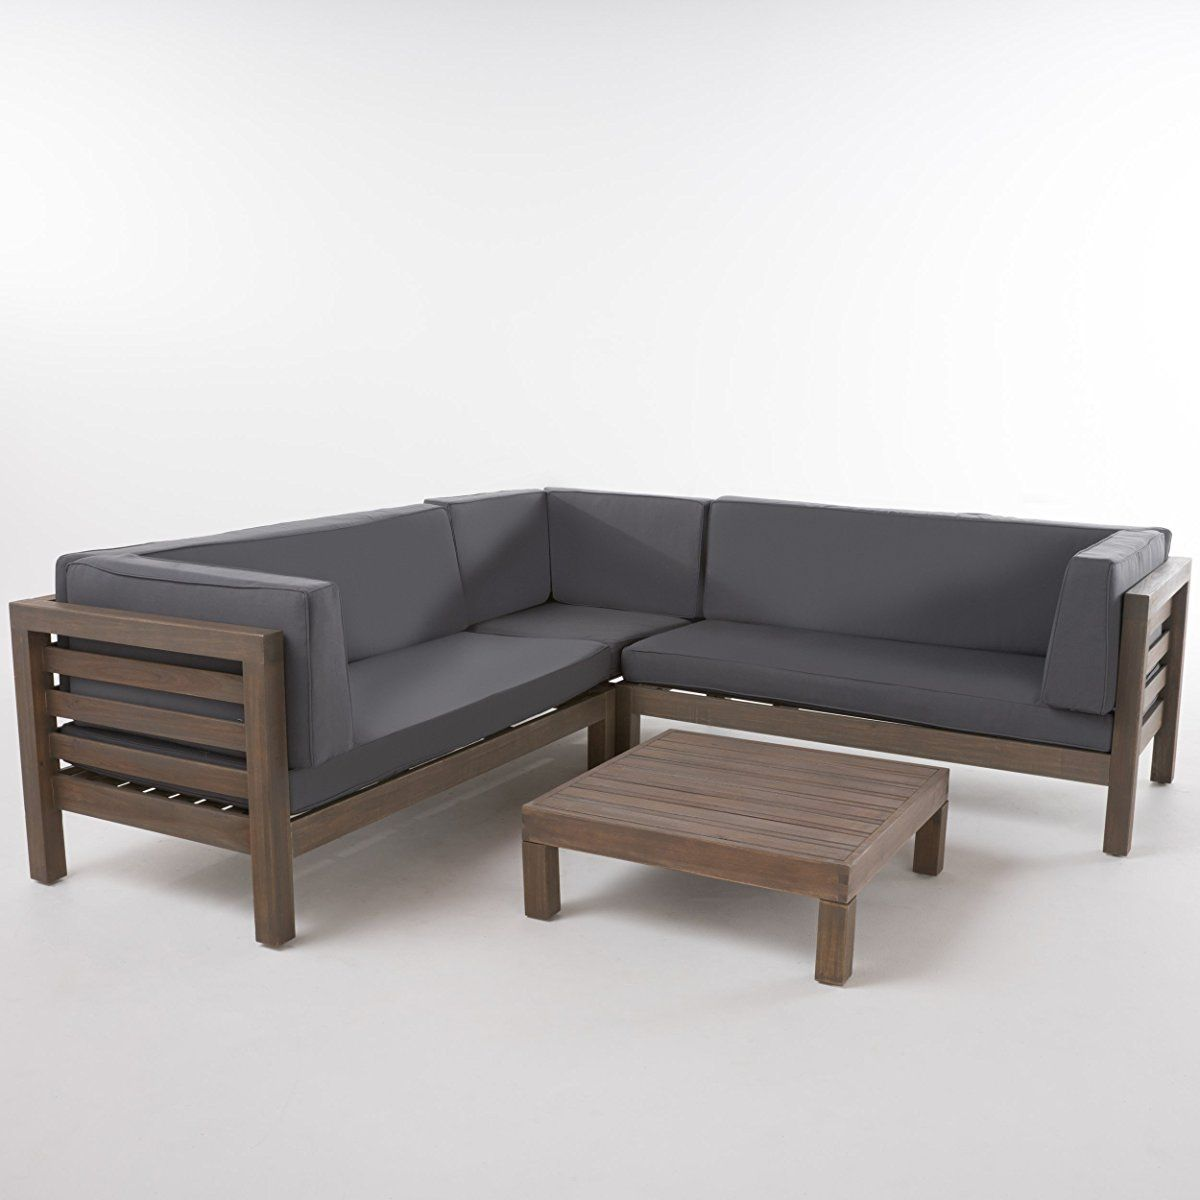 Wooden Sectional Sofa Set W Water Resistant Cushions Grey Furniture Patio Sectional Patio Furnishings